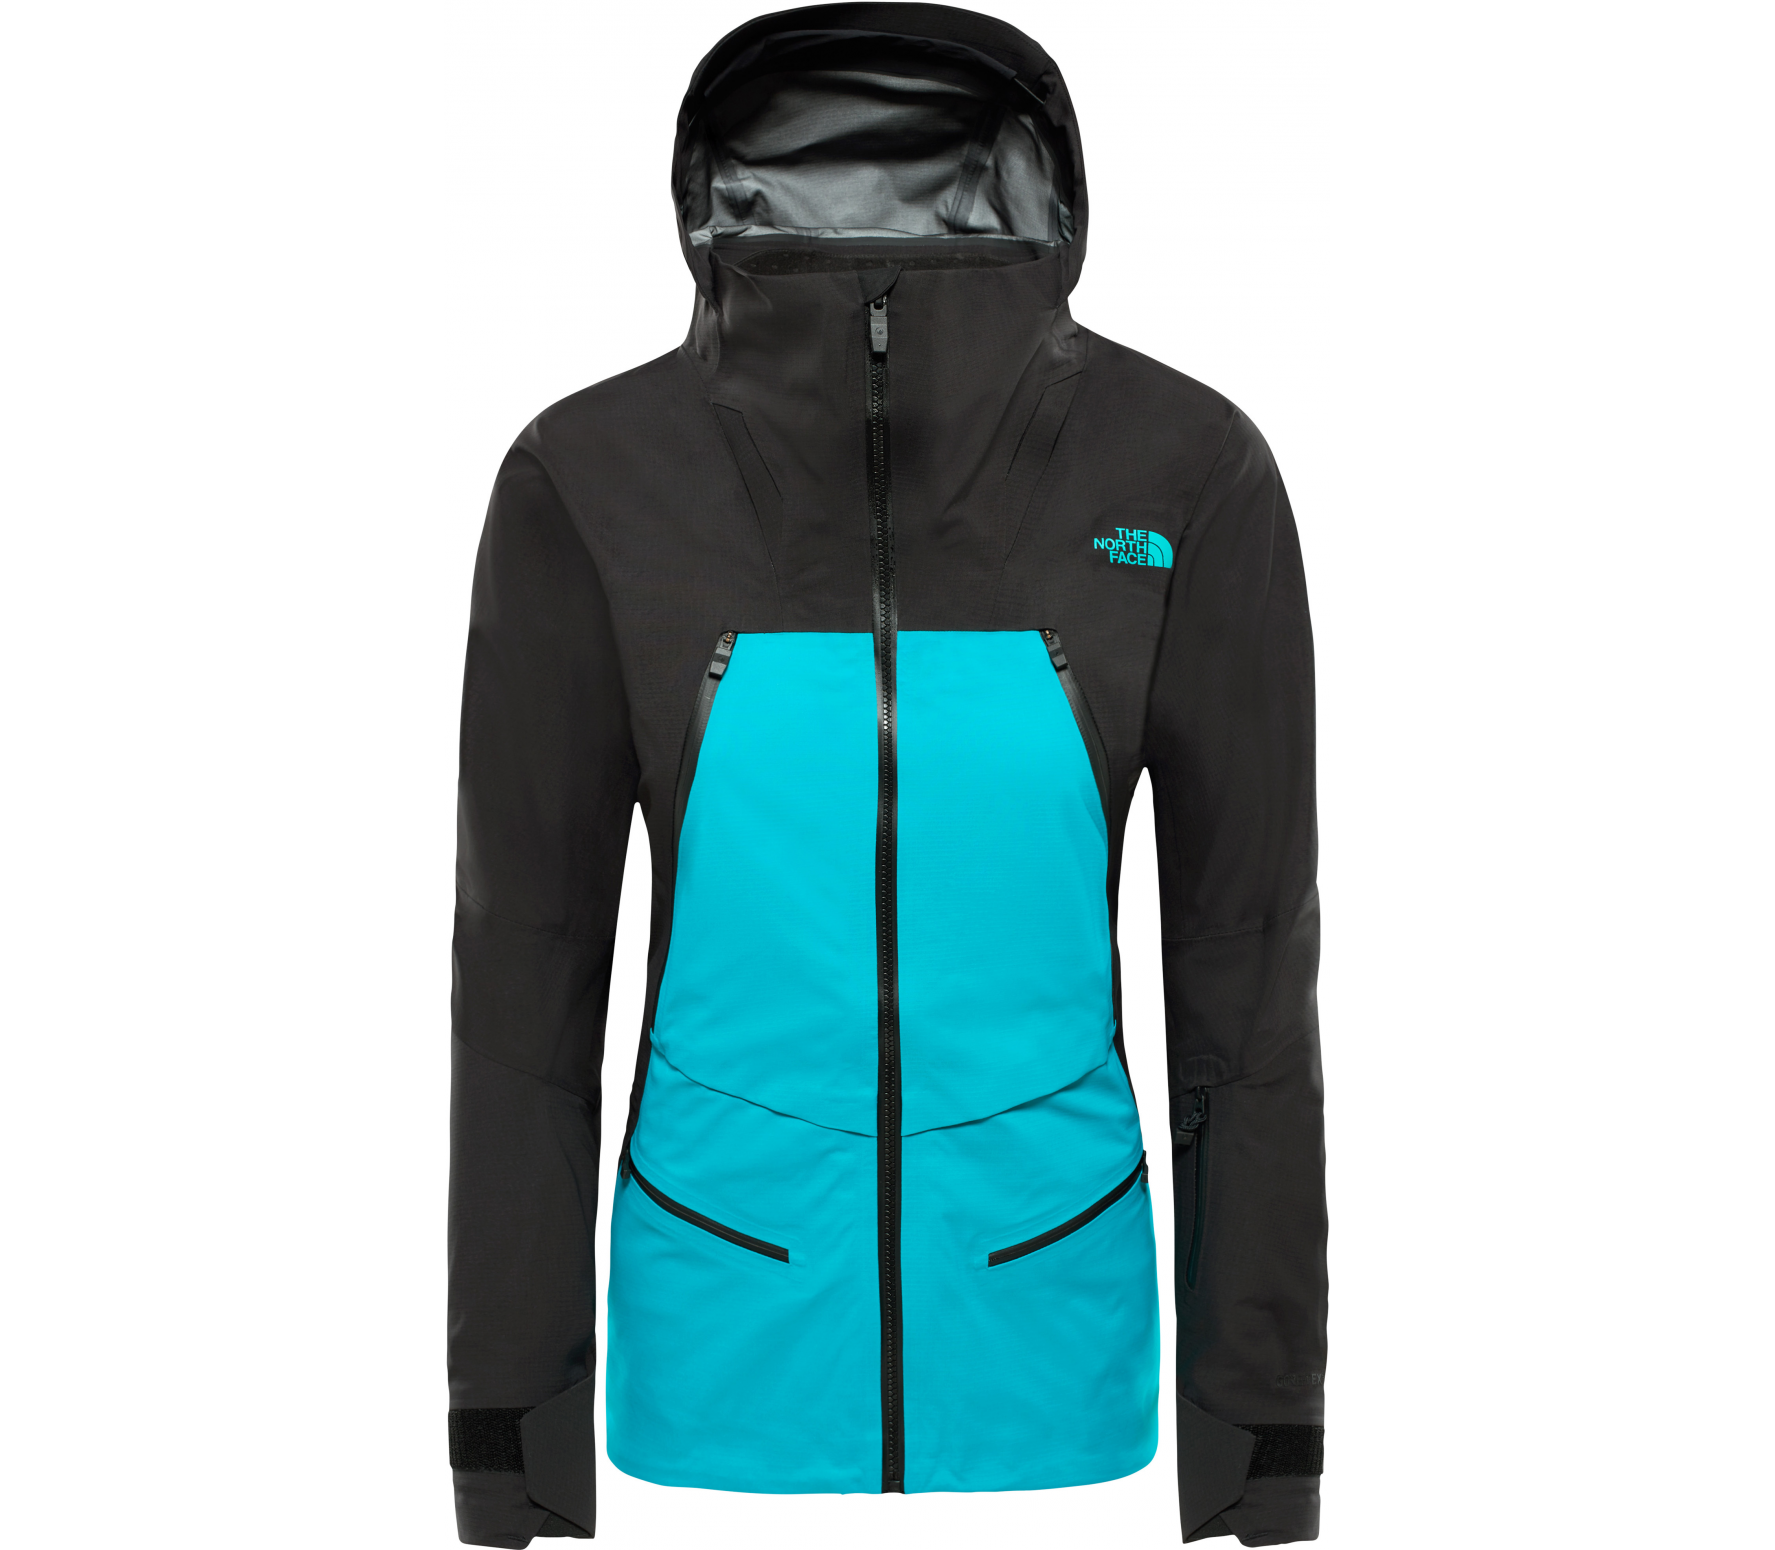 d52000ff86cd6f The North Face - Purist Damen Skijacke (schwarz türkis) im Online ...